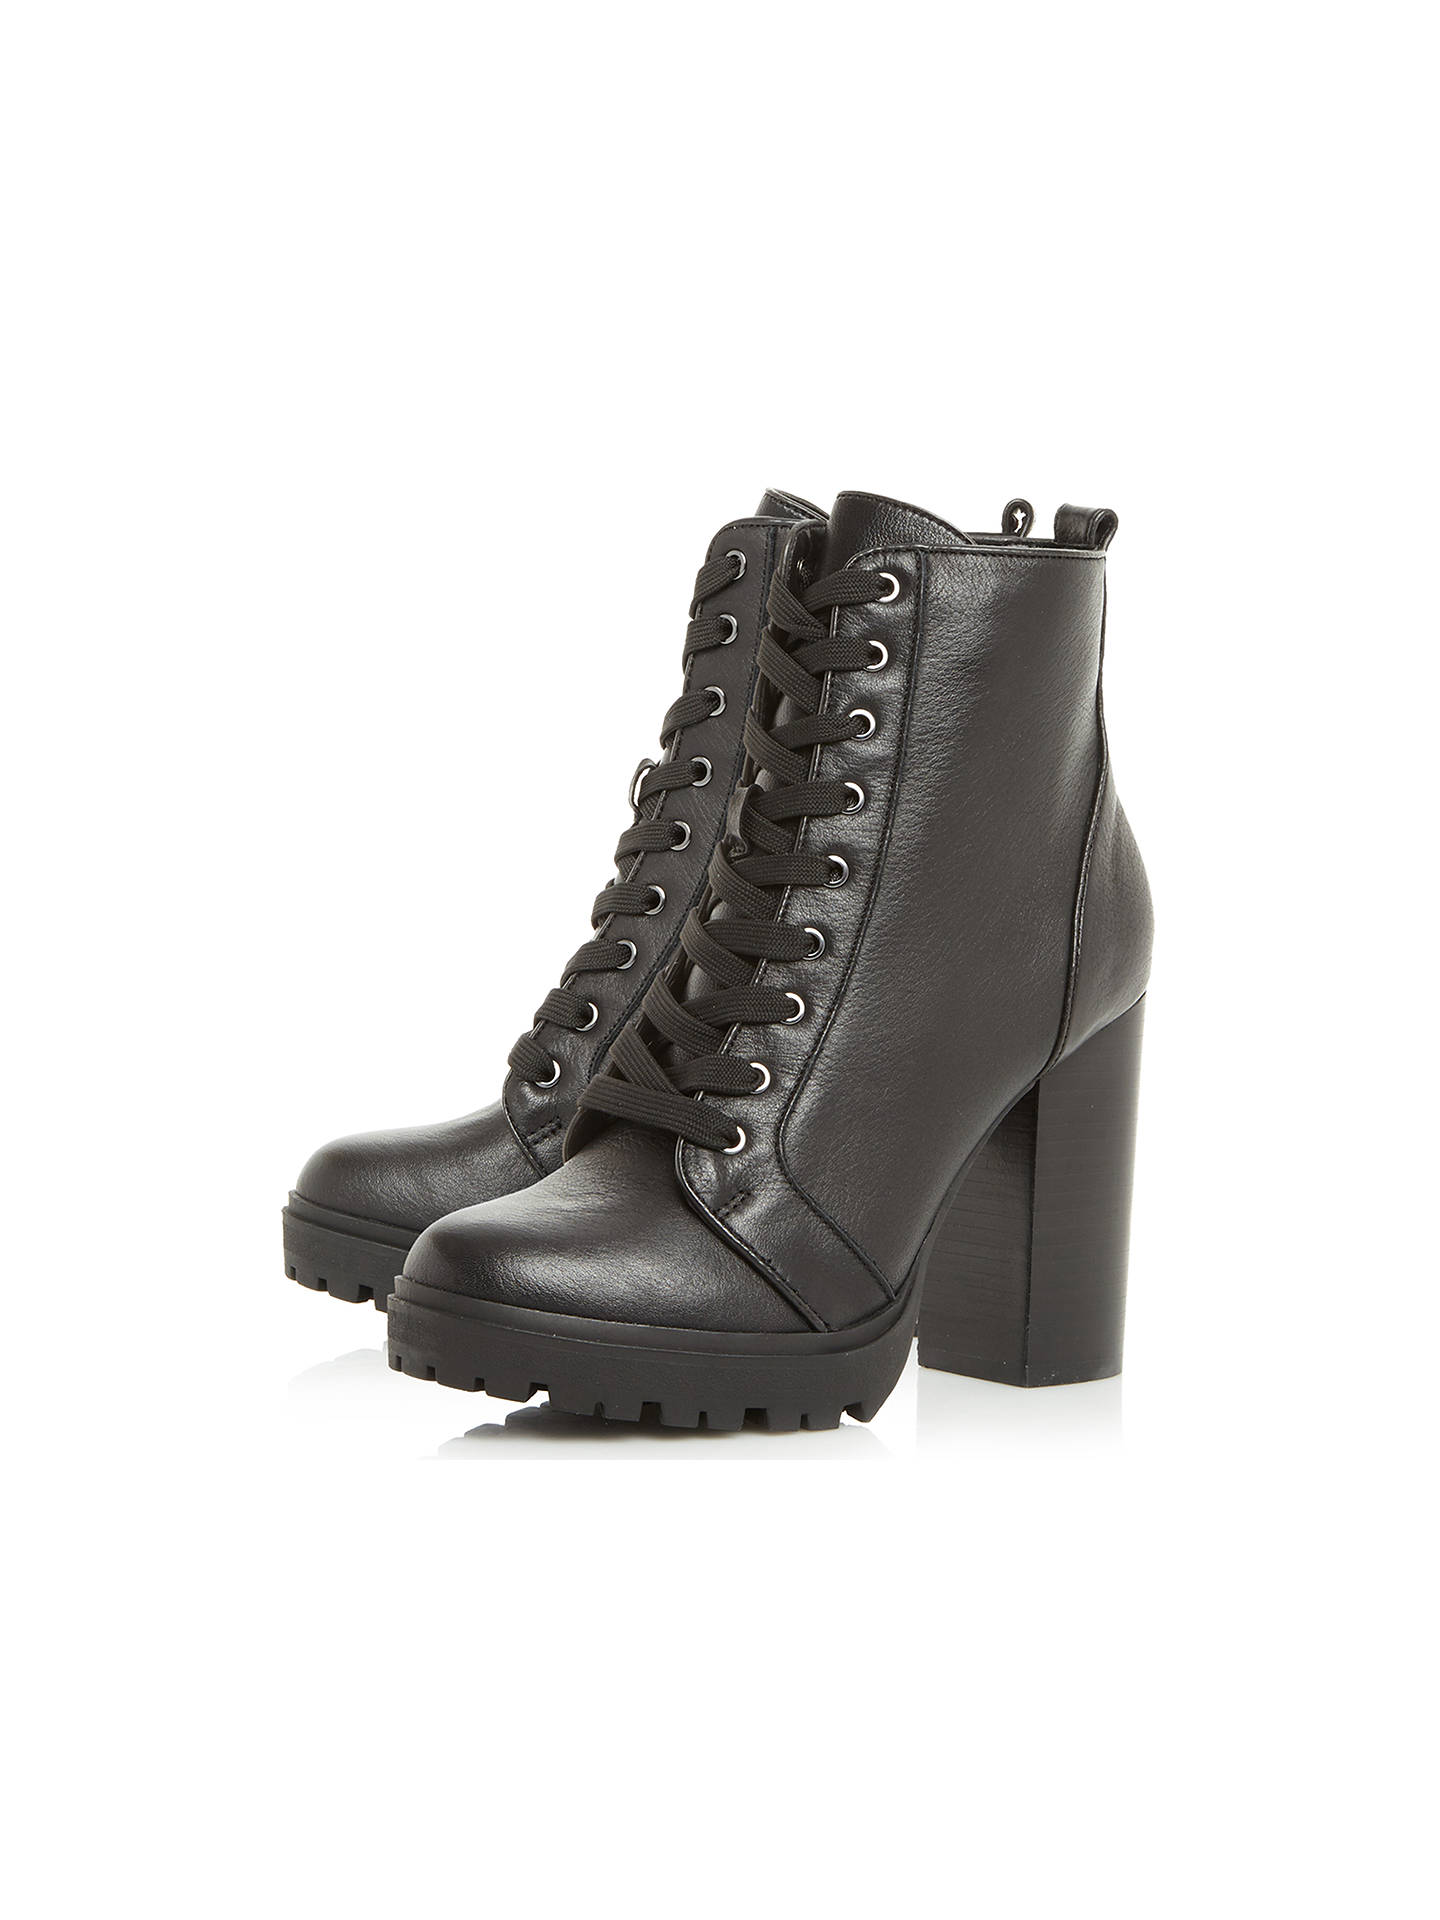 56539db9112 ... Buy Steve Madden Laurie Lace Up Block Heeled Ankle Boots